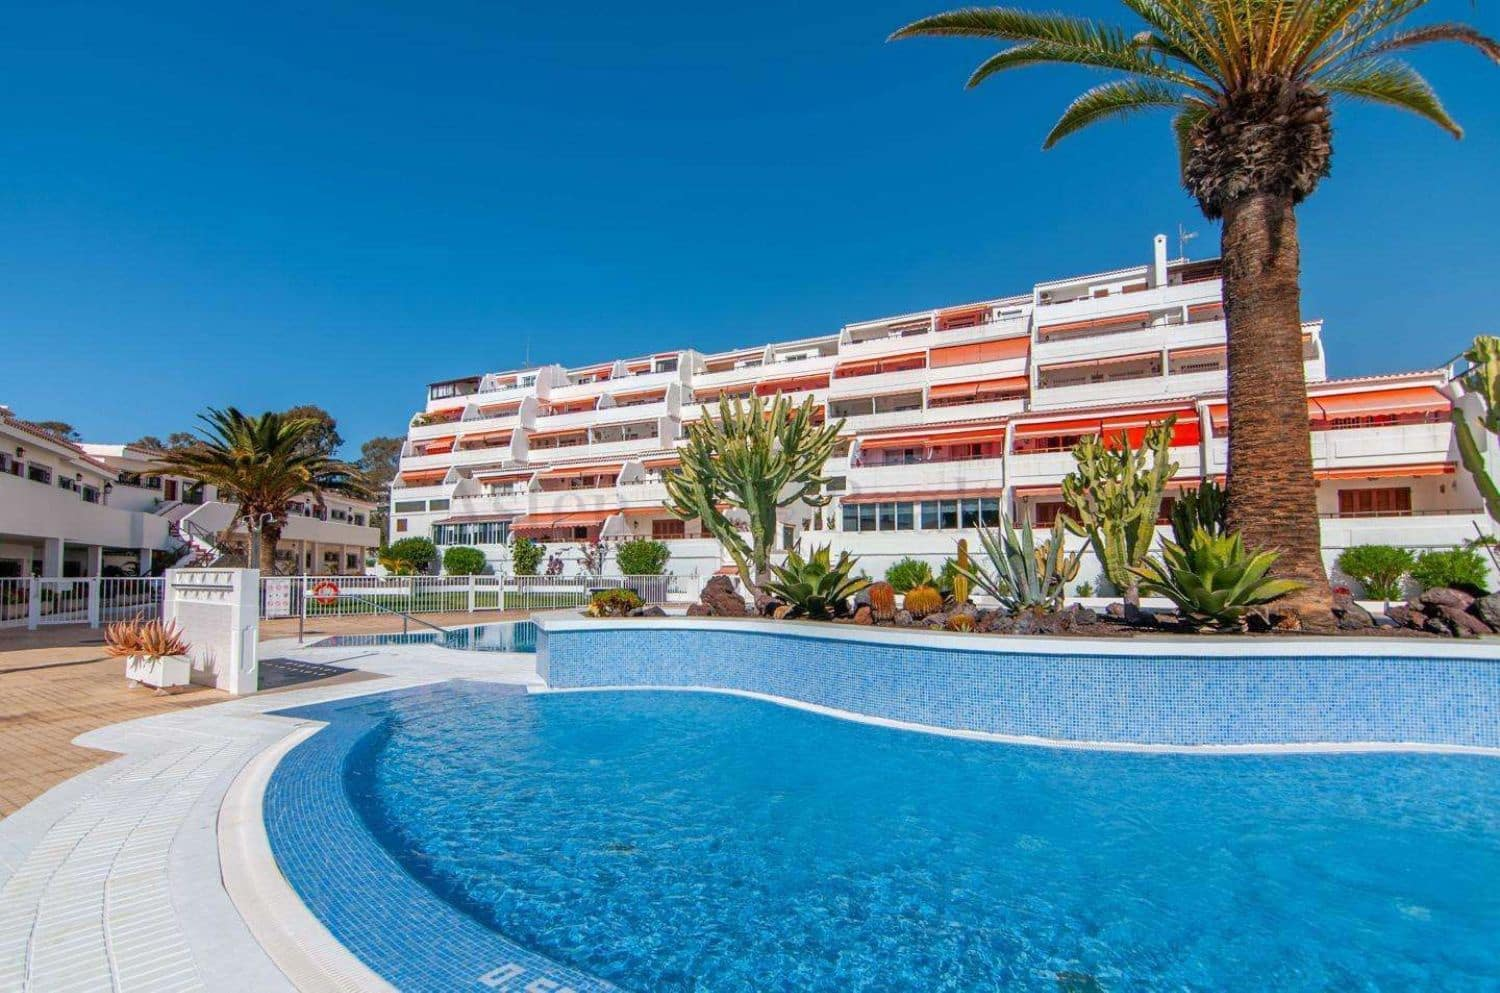 1 bedroom Apartment for sale in Los Cristianos with pool garage - € 259,000 (Ref: 4963532)